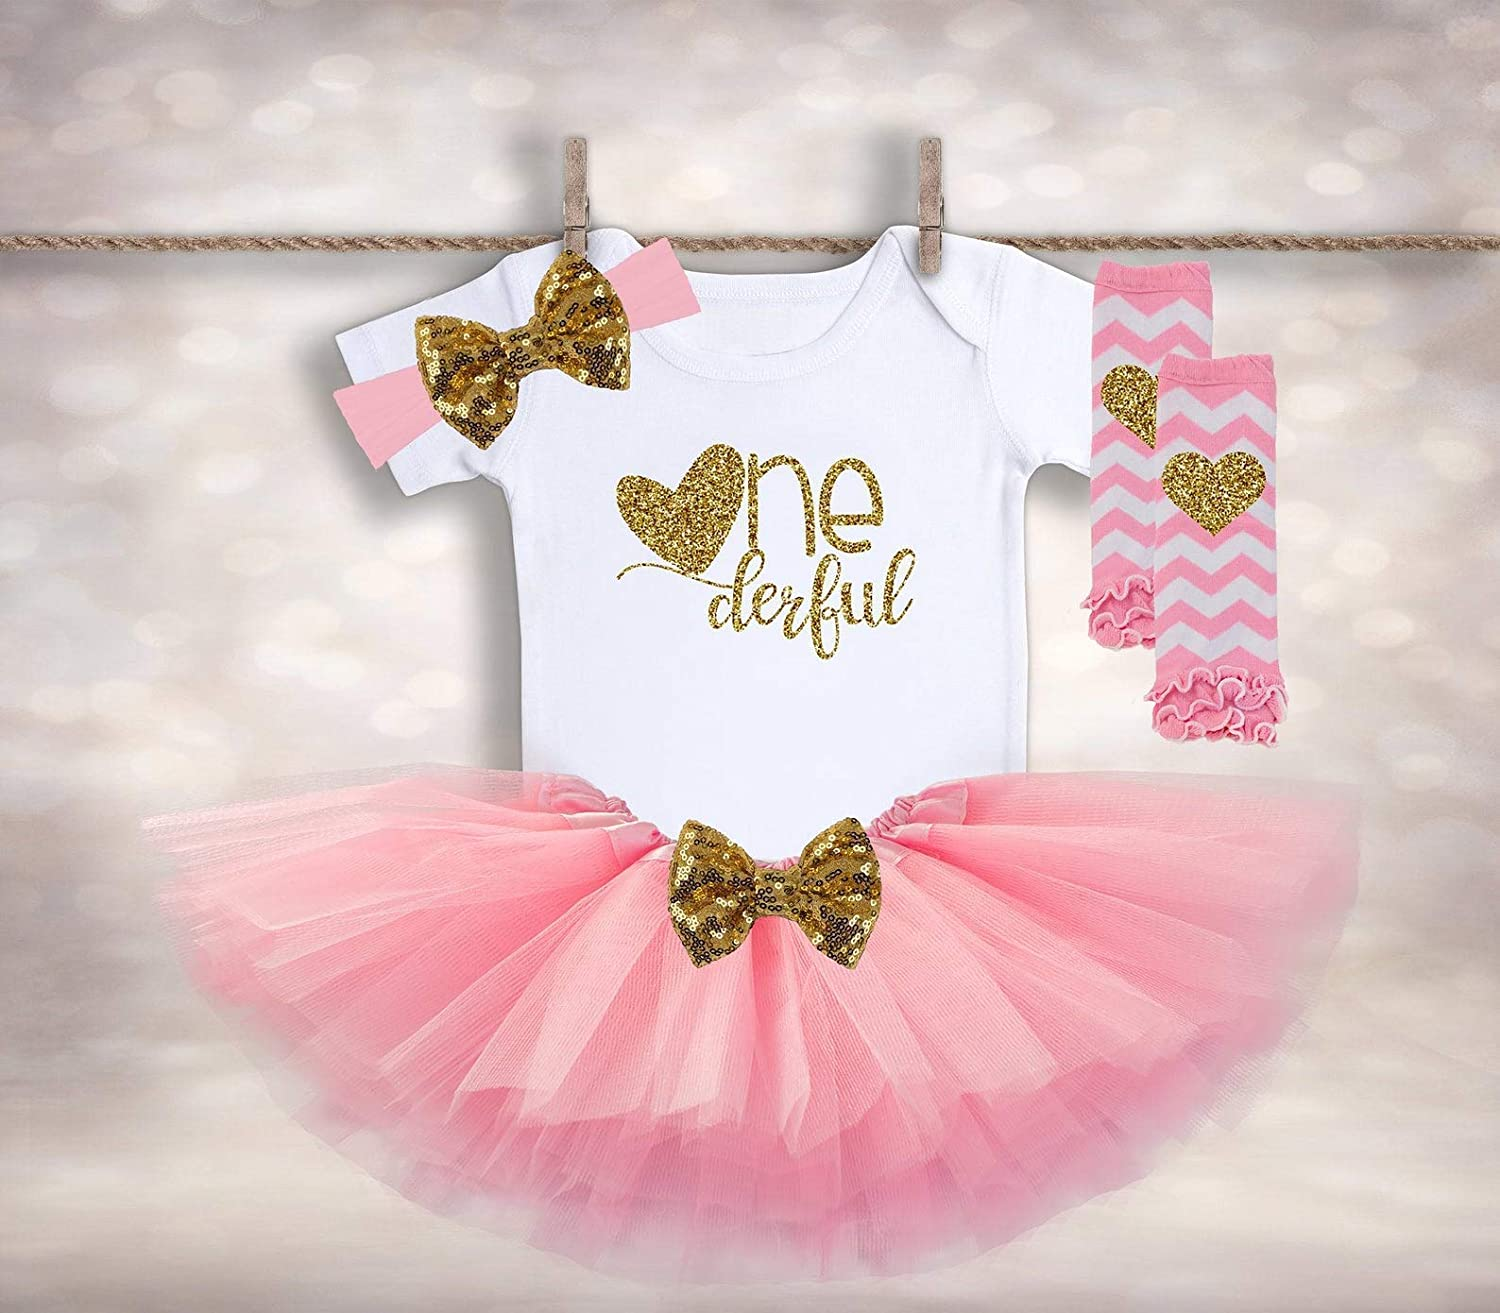 Girls 1st birthday outfit personalized birthday outfit pink and gold first birthday outfit Cake smash outfit 1st birthday tutu outfit